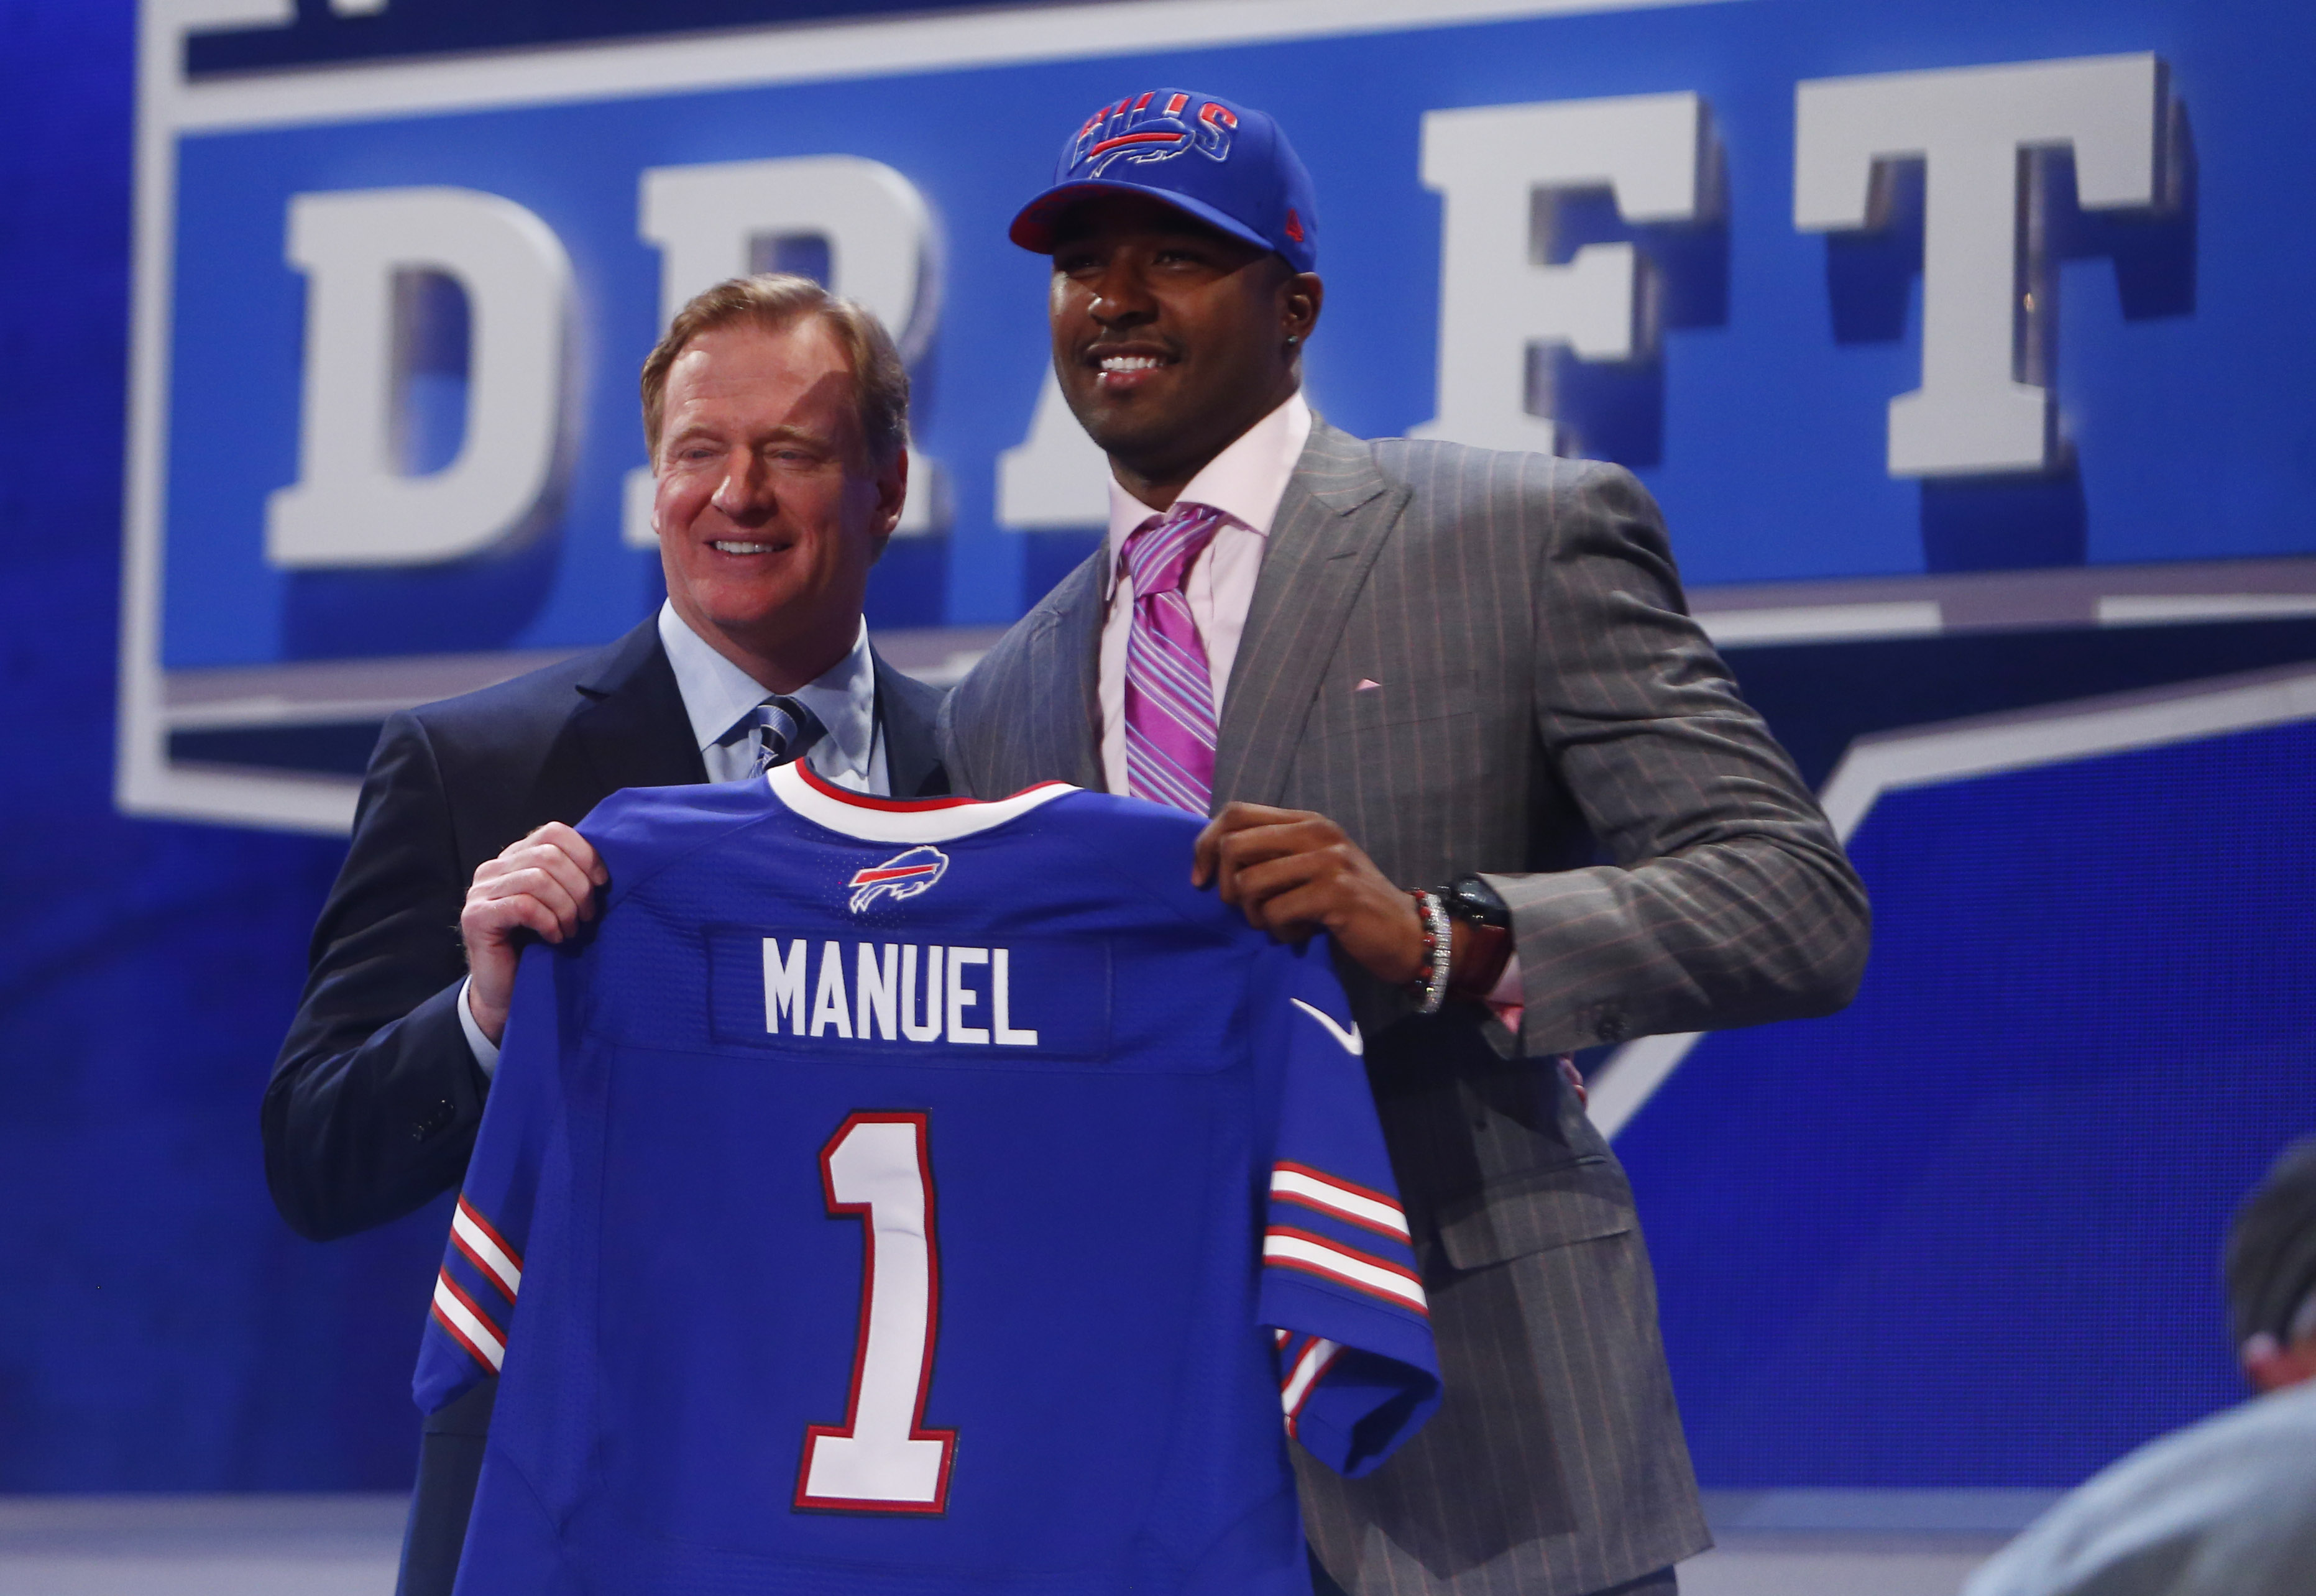 NFL commissioner Roger Goodell introduces E.J. Manuel. (USA TODAY Sports)